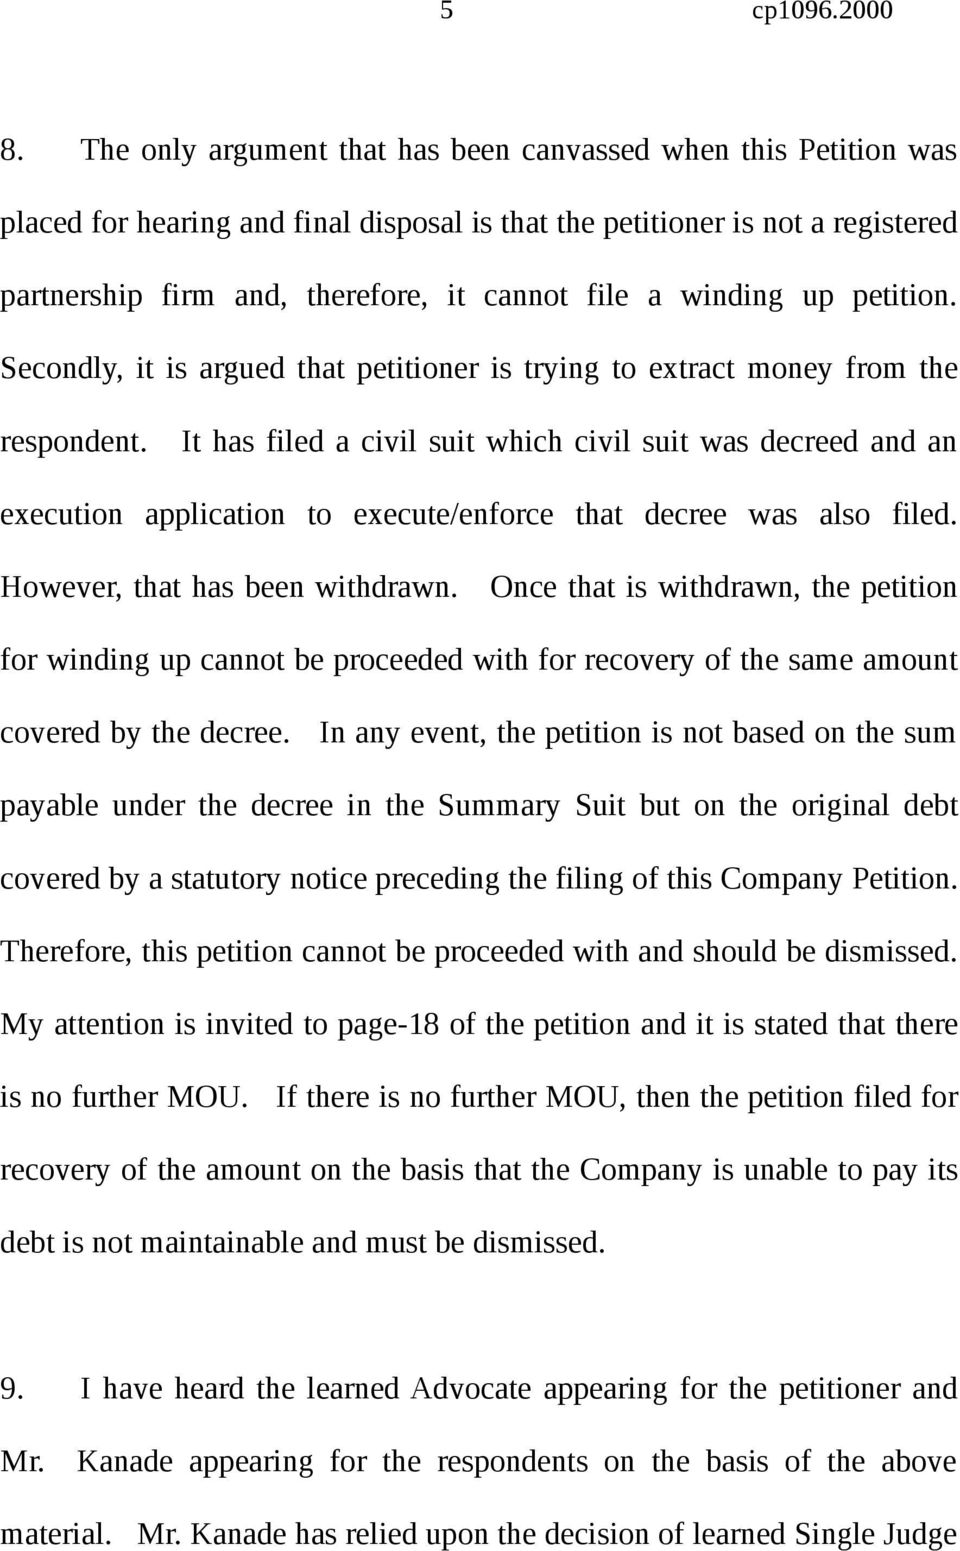 winding up petition. Secondly, it is argued that petitioner is trying to extract money from the respondent.